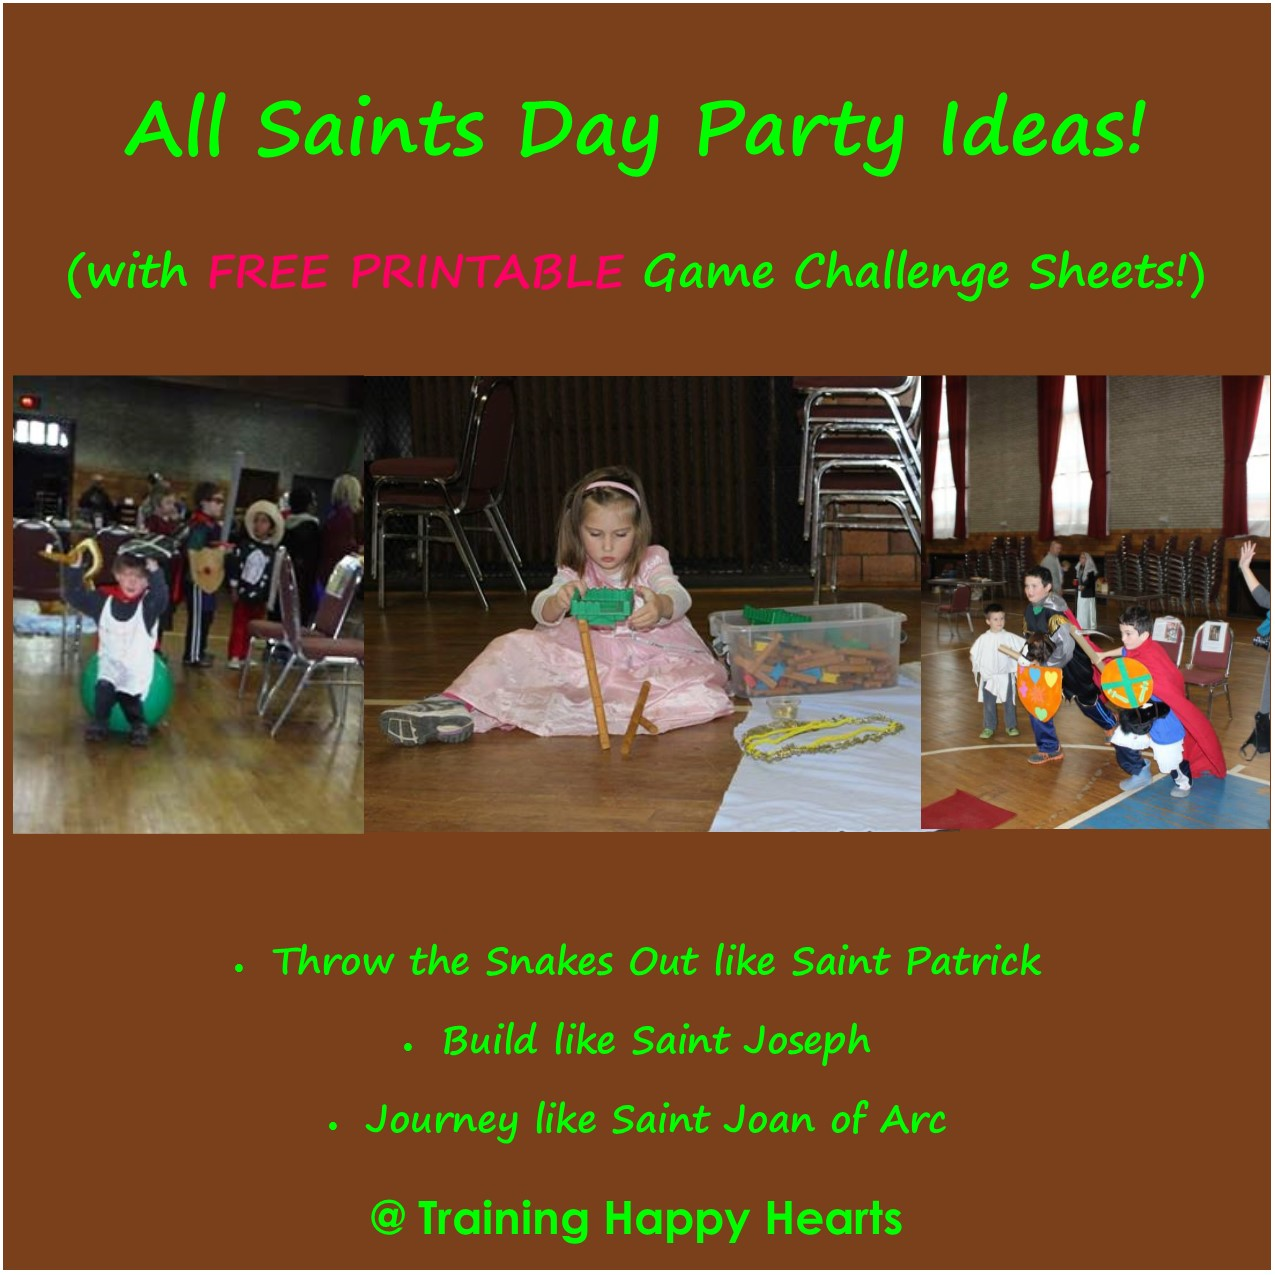 Training Happy Hearts 3 More All Saints Day Party Ideas